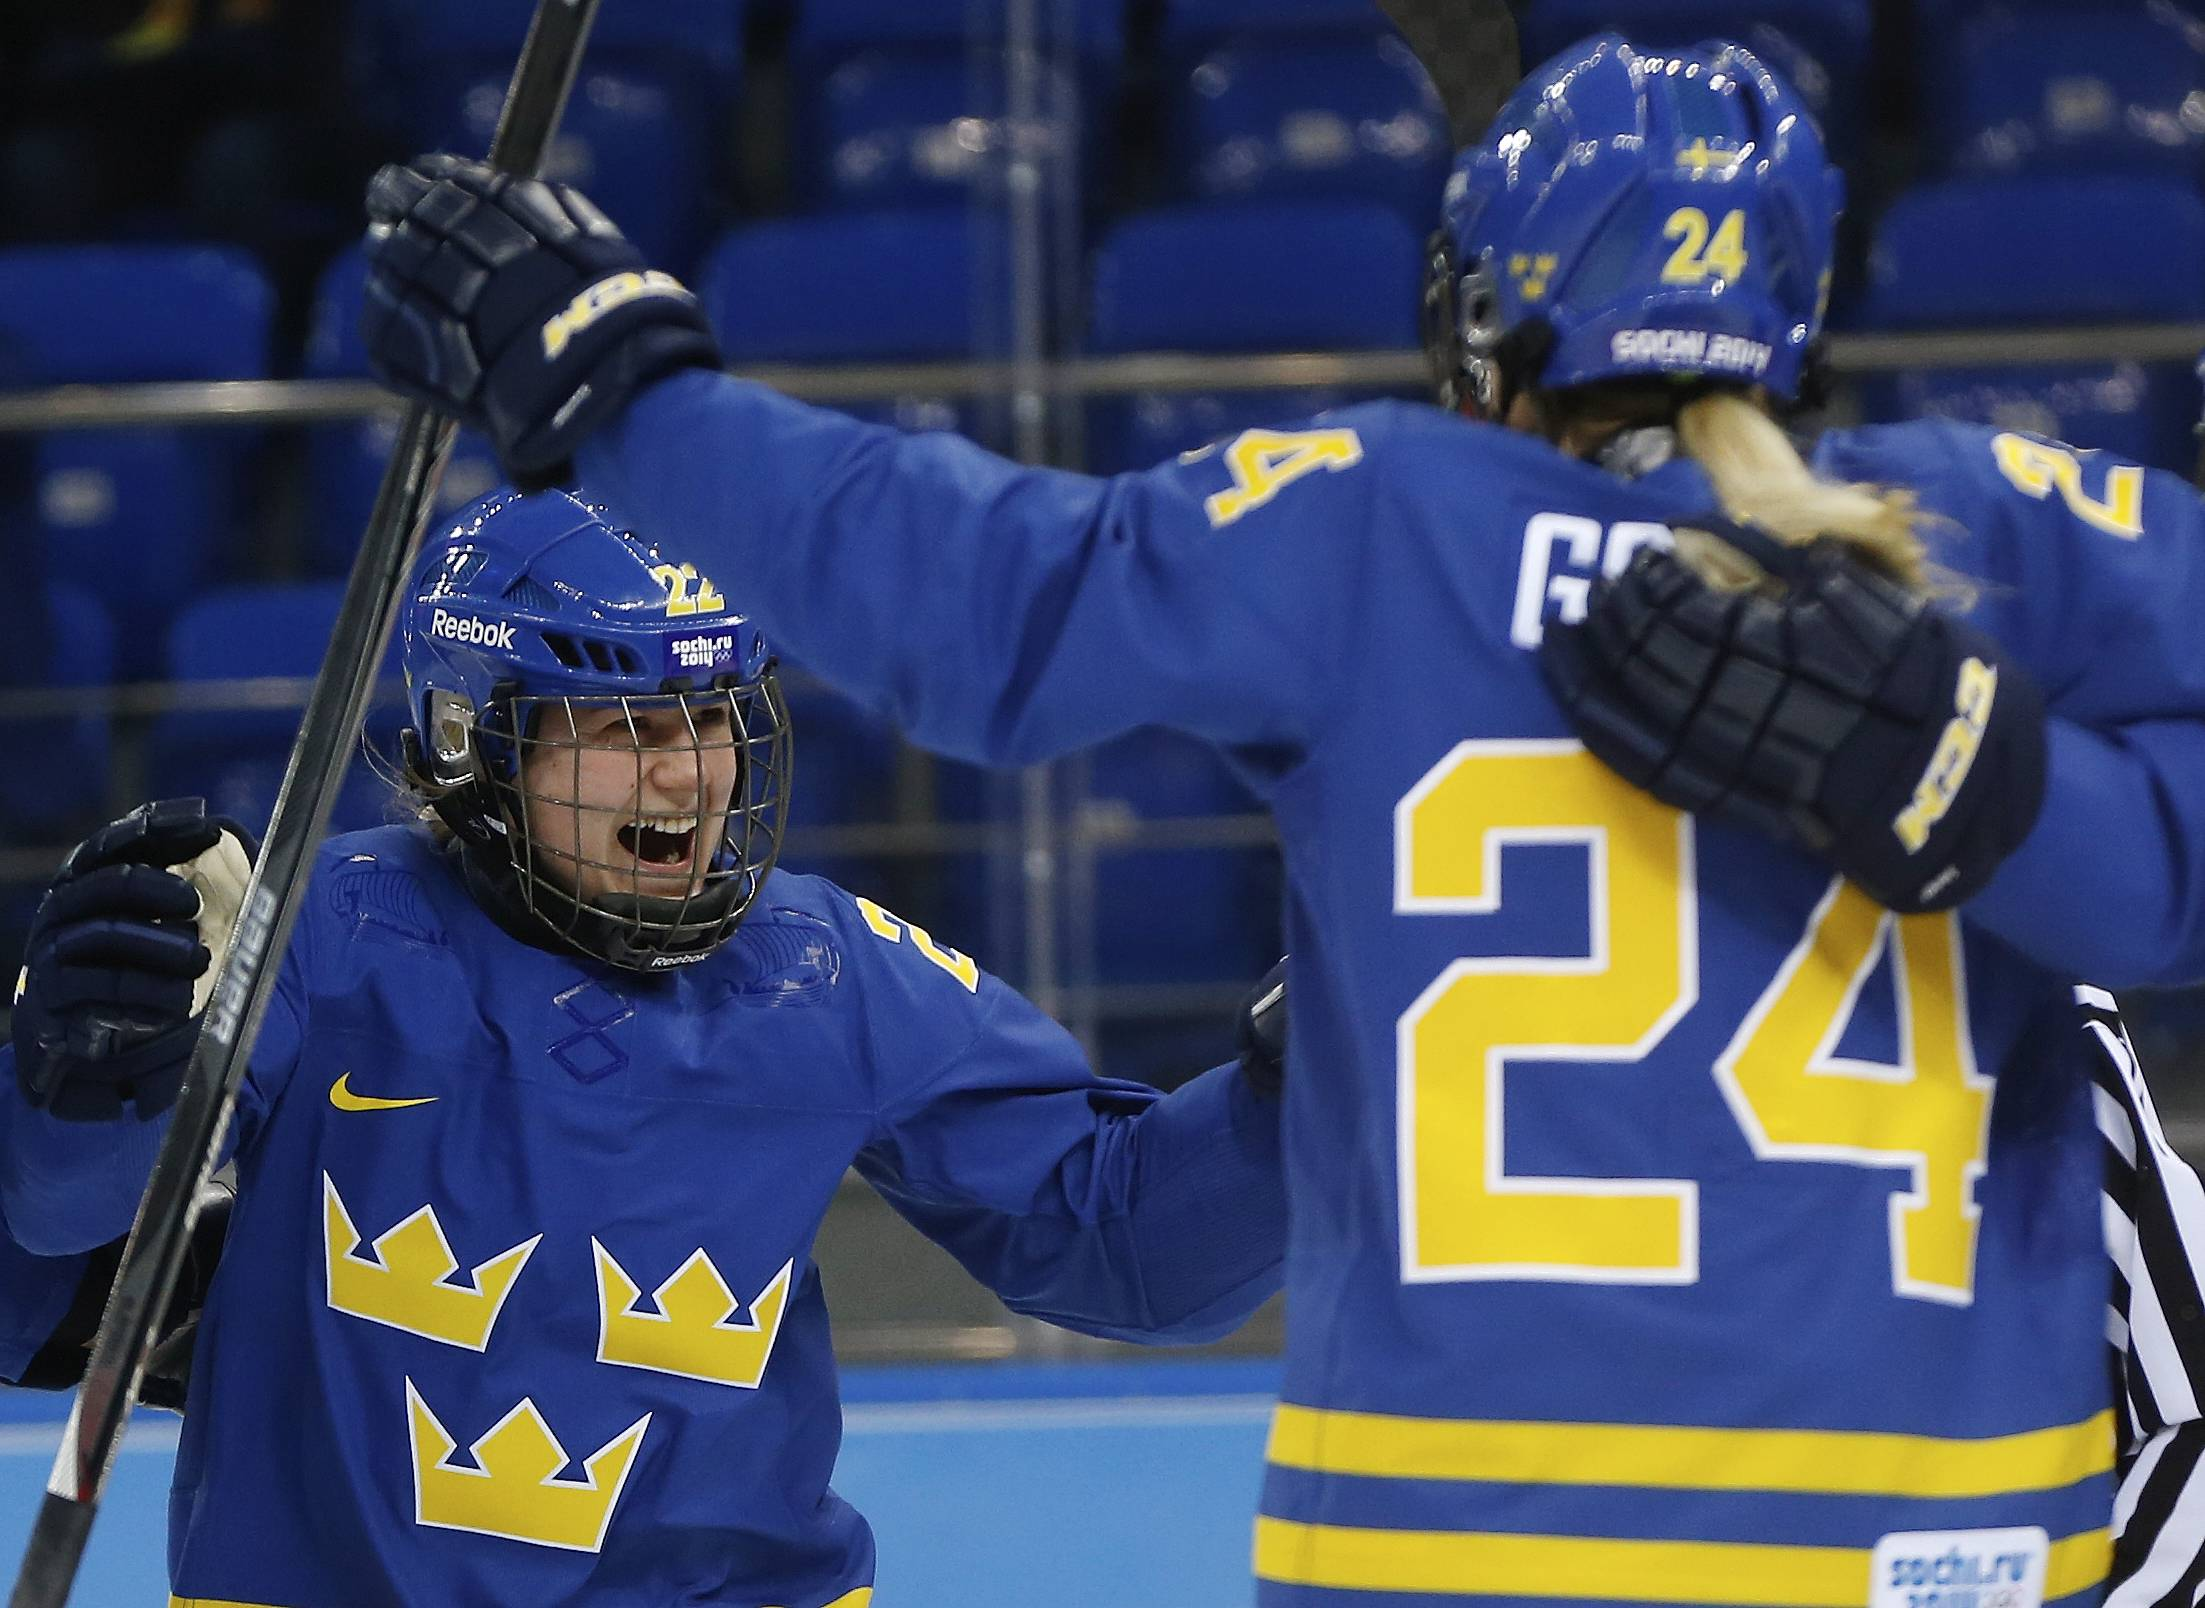 Emma Eliasson of Sweden, left, celebrates with teammates after Emma Nordin's goal against Germany during the first period of the 2014 Winter Olympics women's ice hockey game .